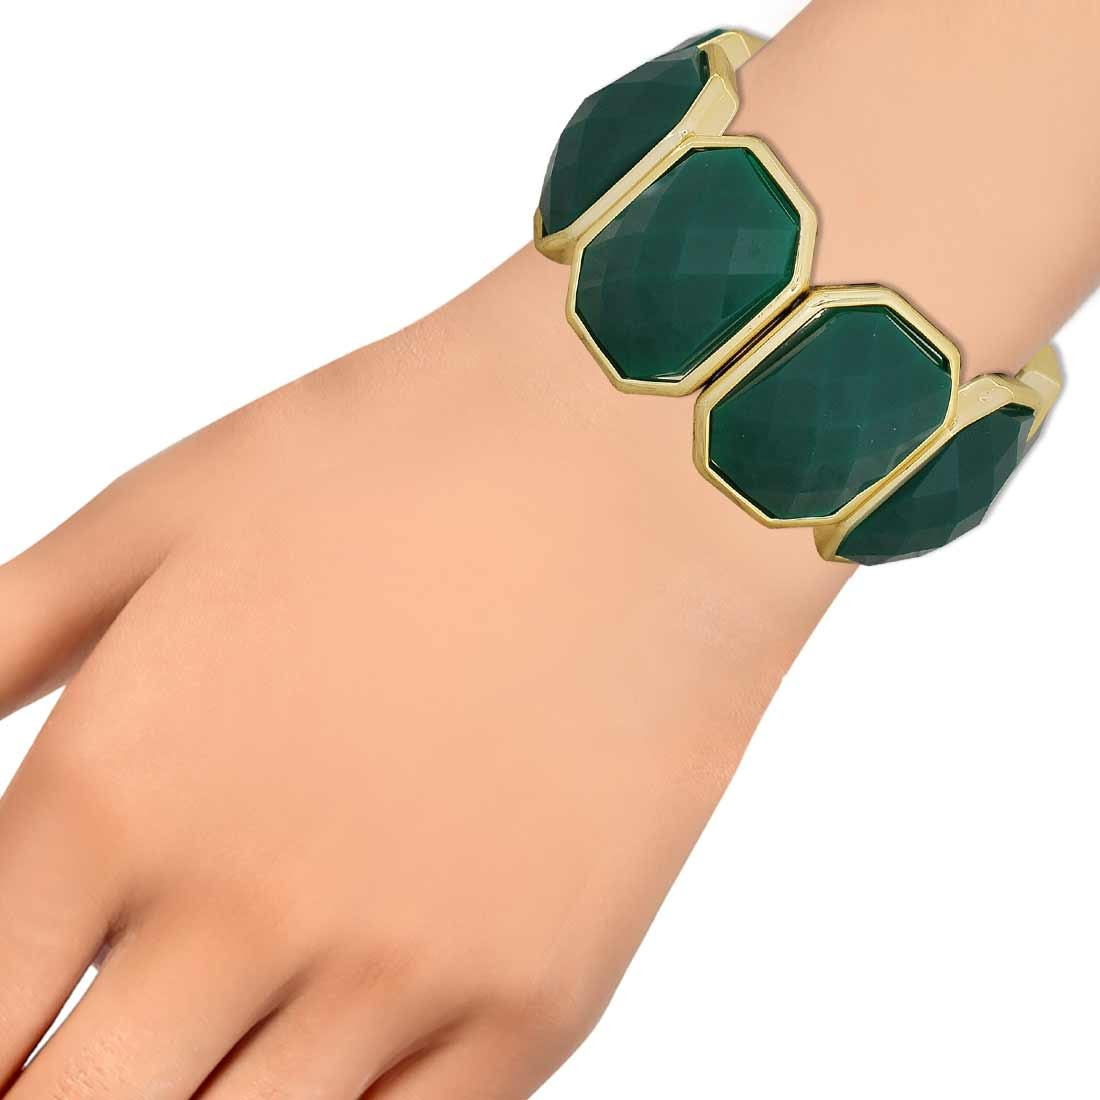 Lively Green Gold Contemporary Adjustable Reunion Bracelet Alloy Maayra MY6889